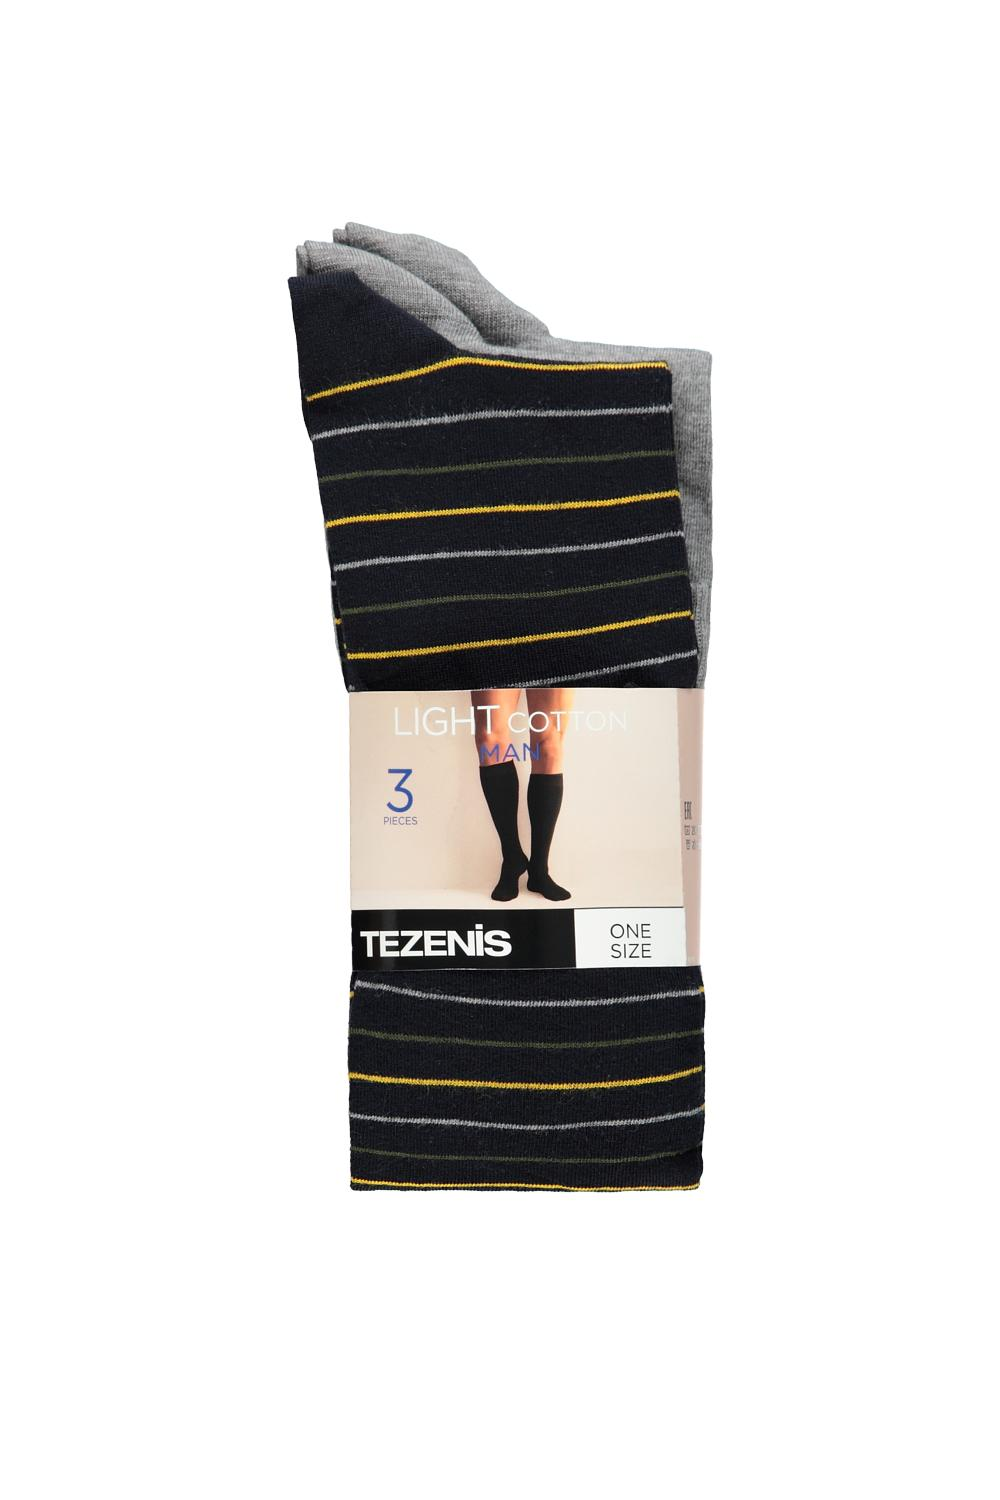 3 X Patterned Long Socks